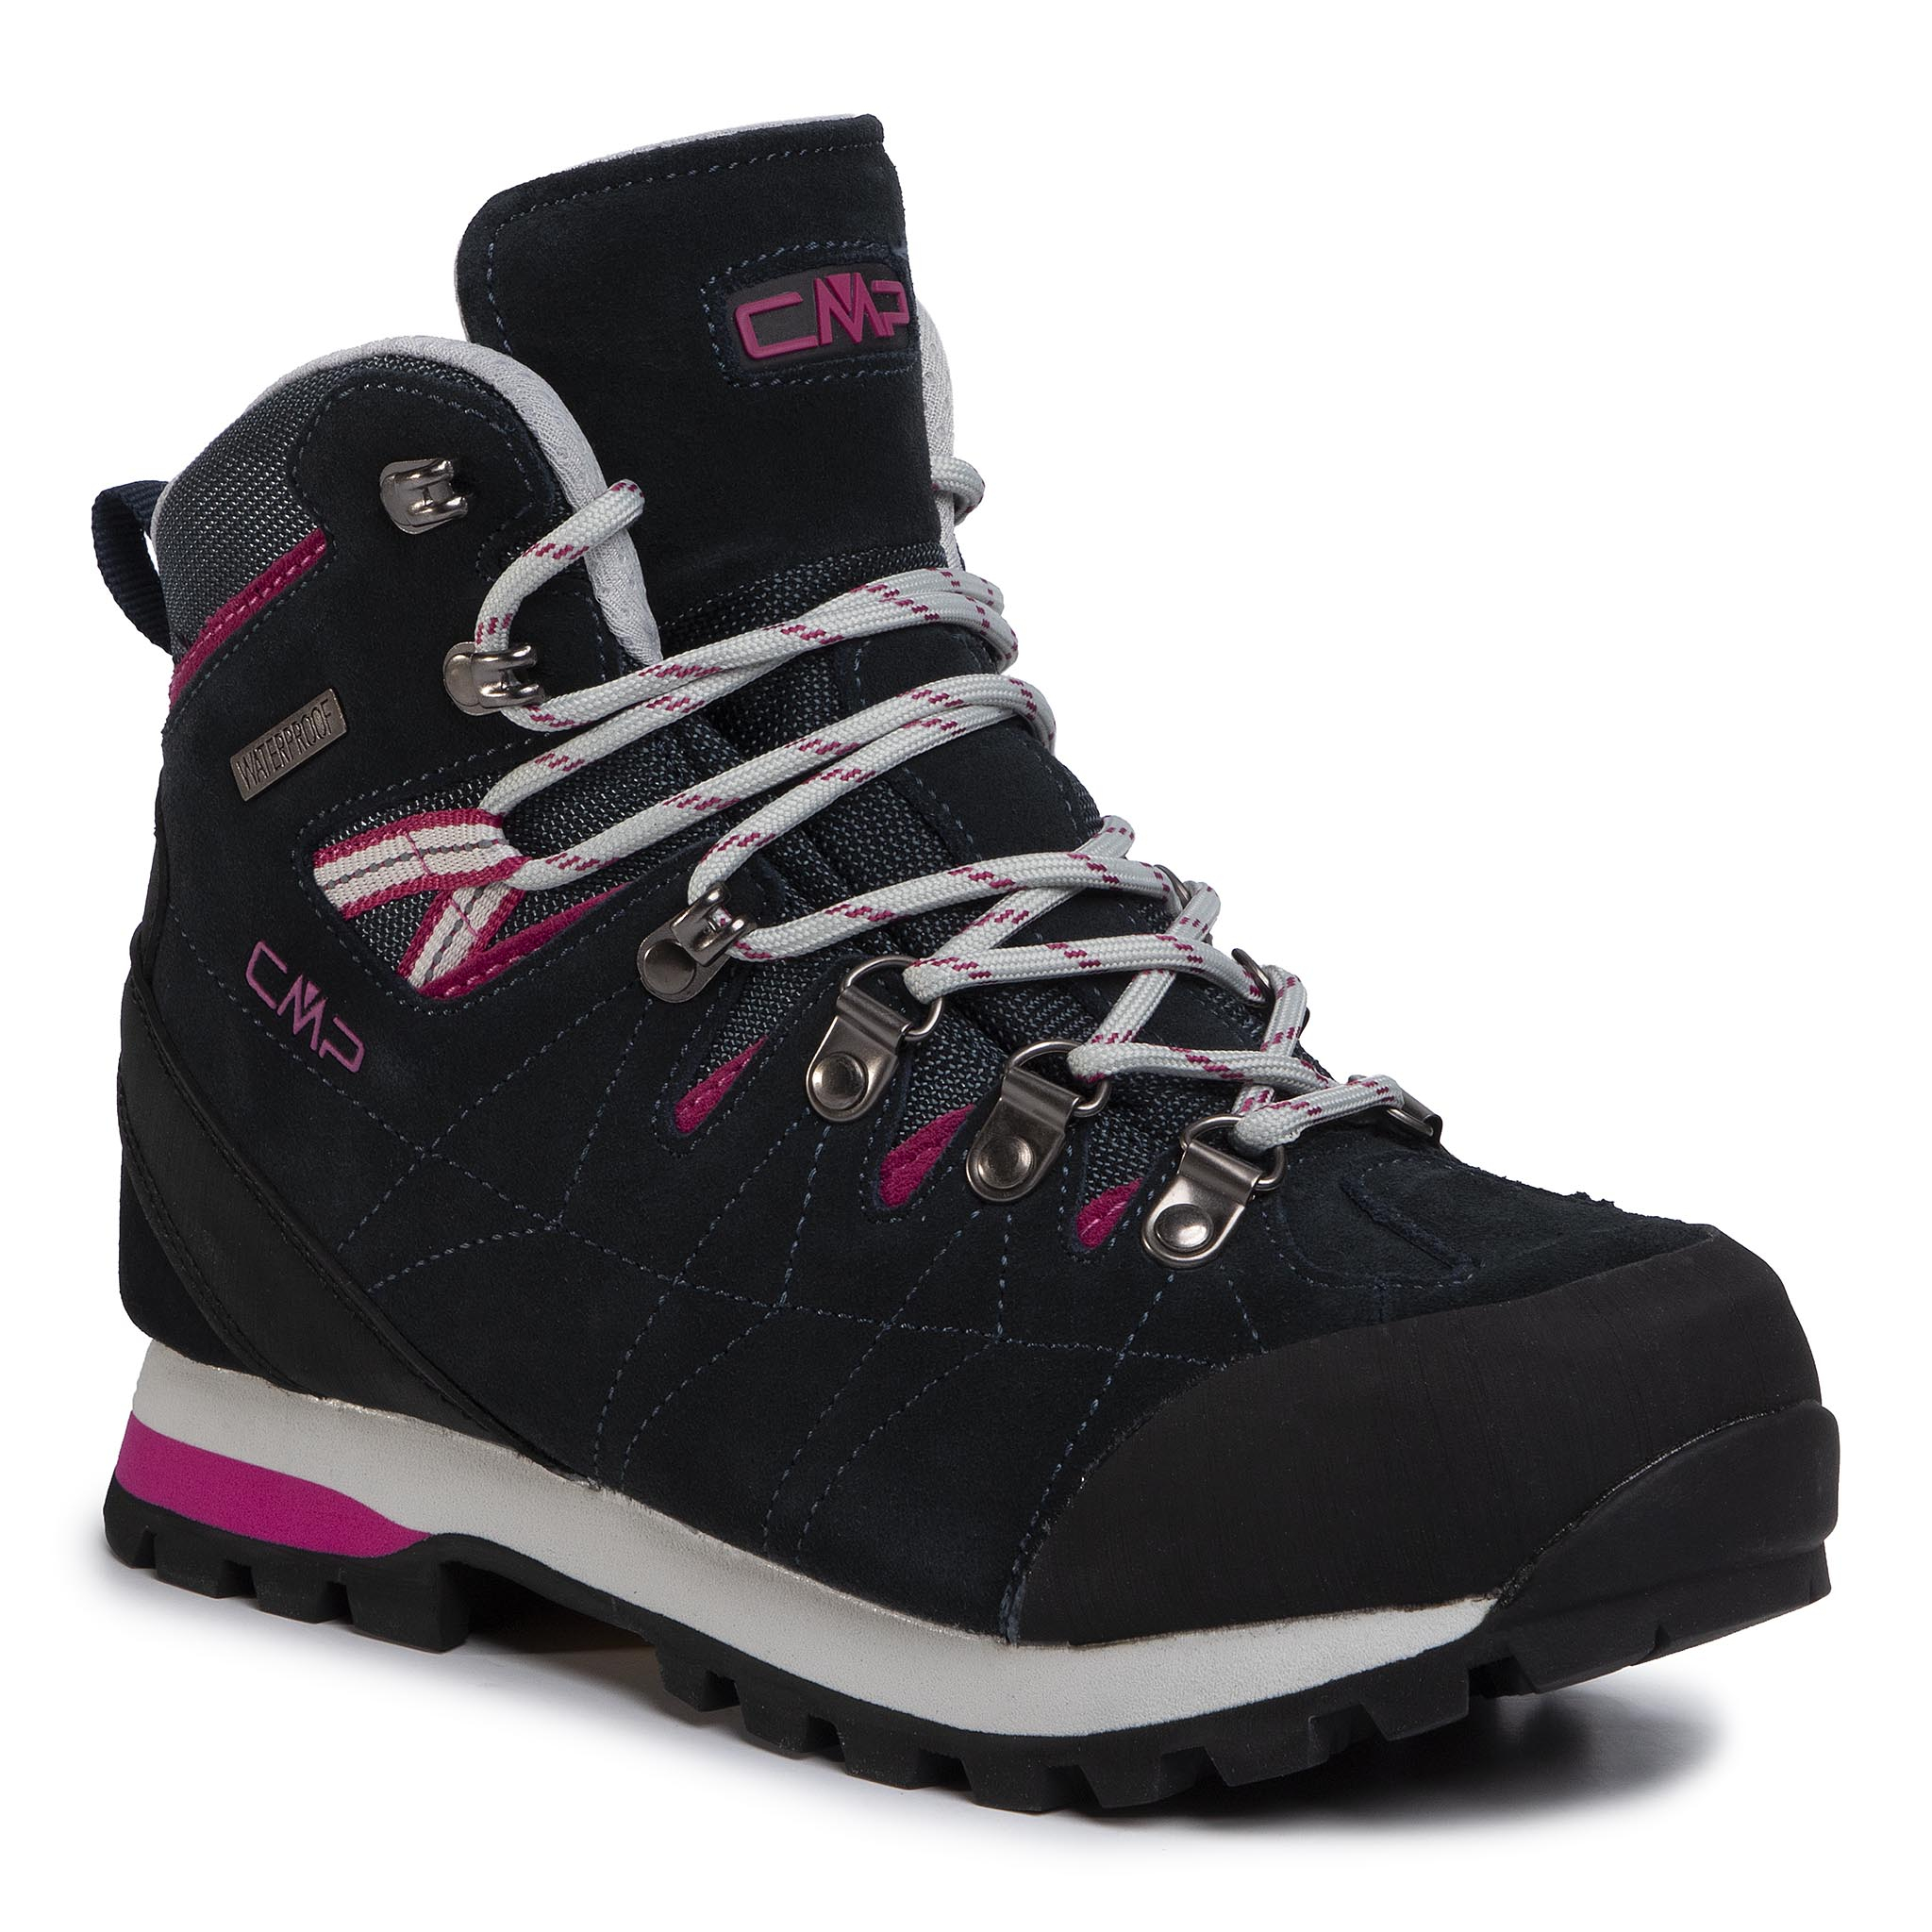 Trekkings Cmp - Arietis Wmn Trekking Shoes Wp 38q9986 Antracite/Bounganville 54ue imagine epantofi.ro 2021